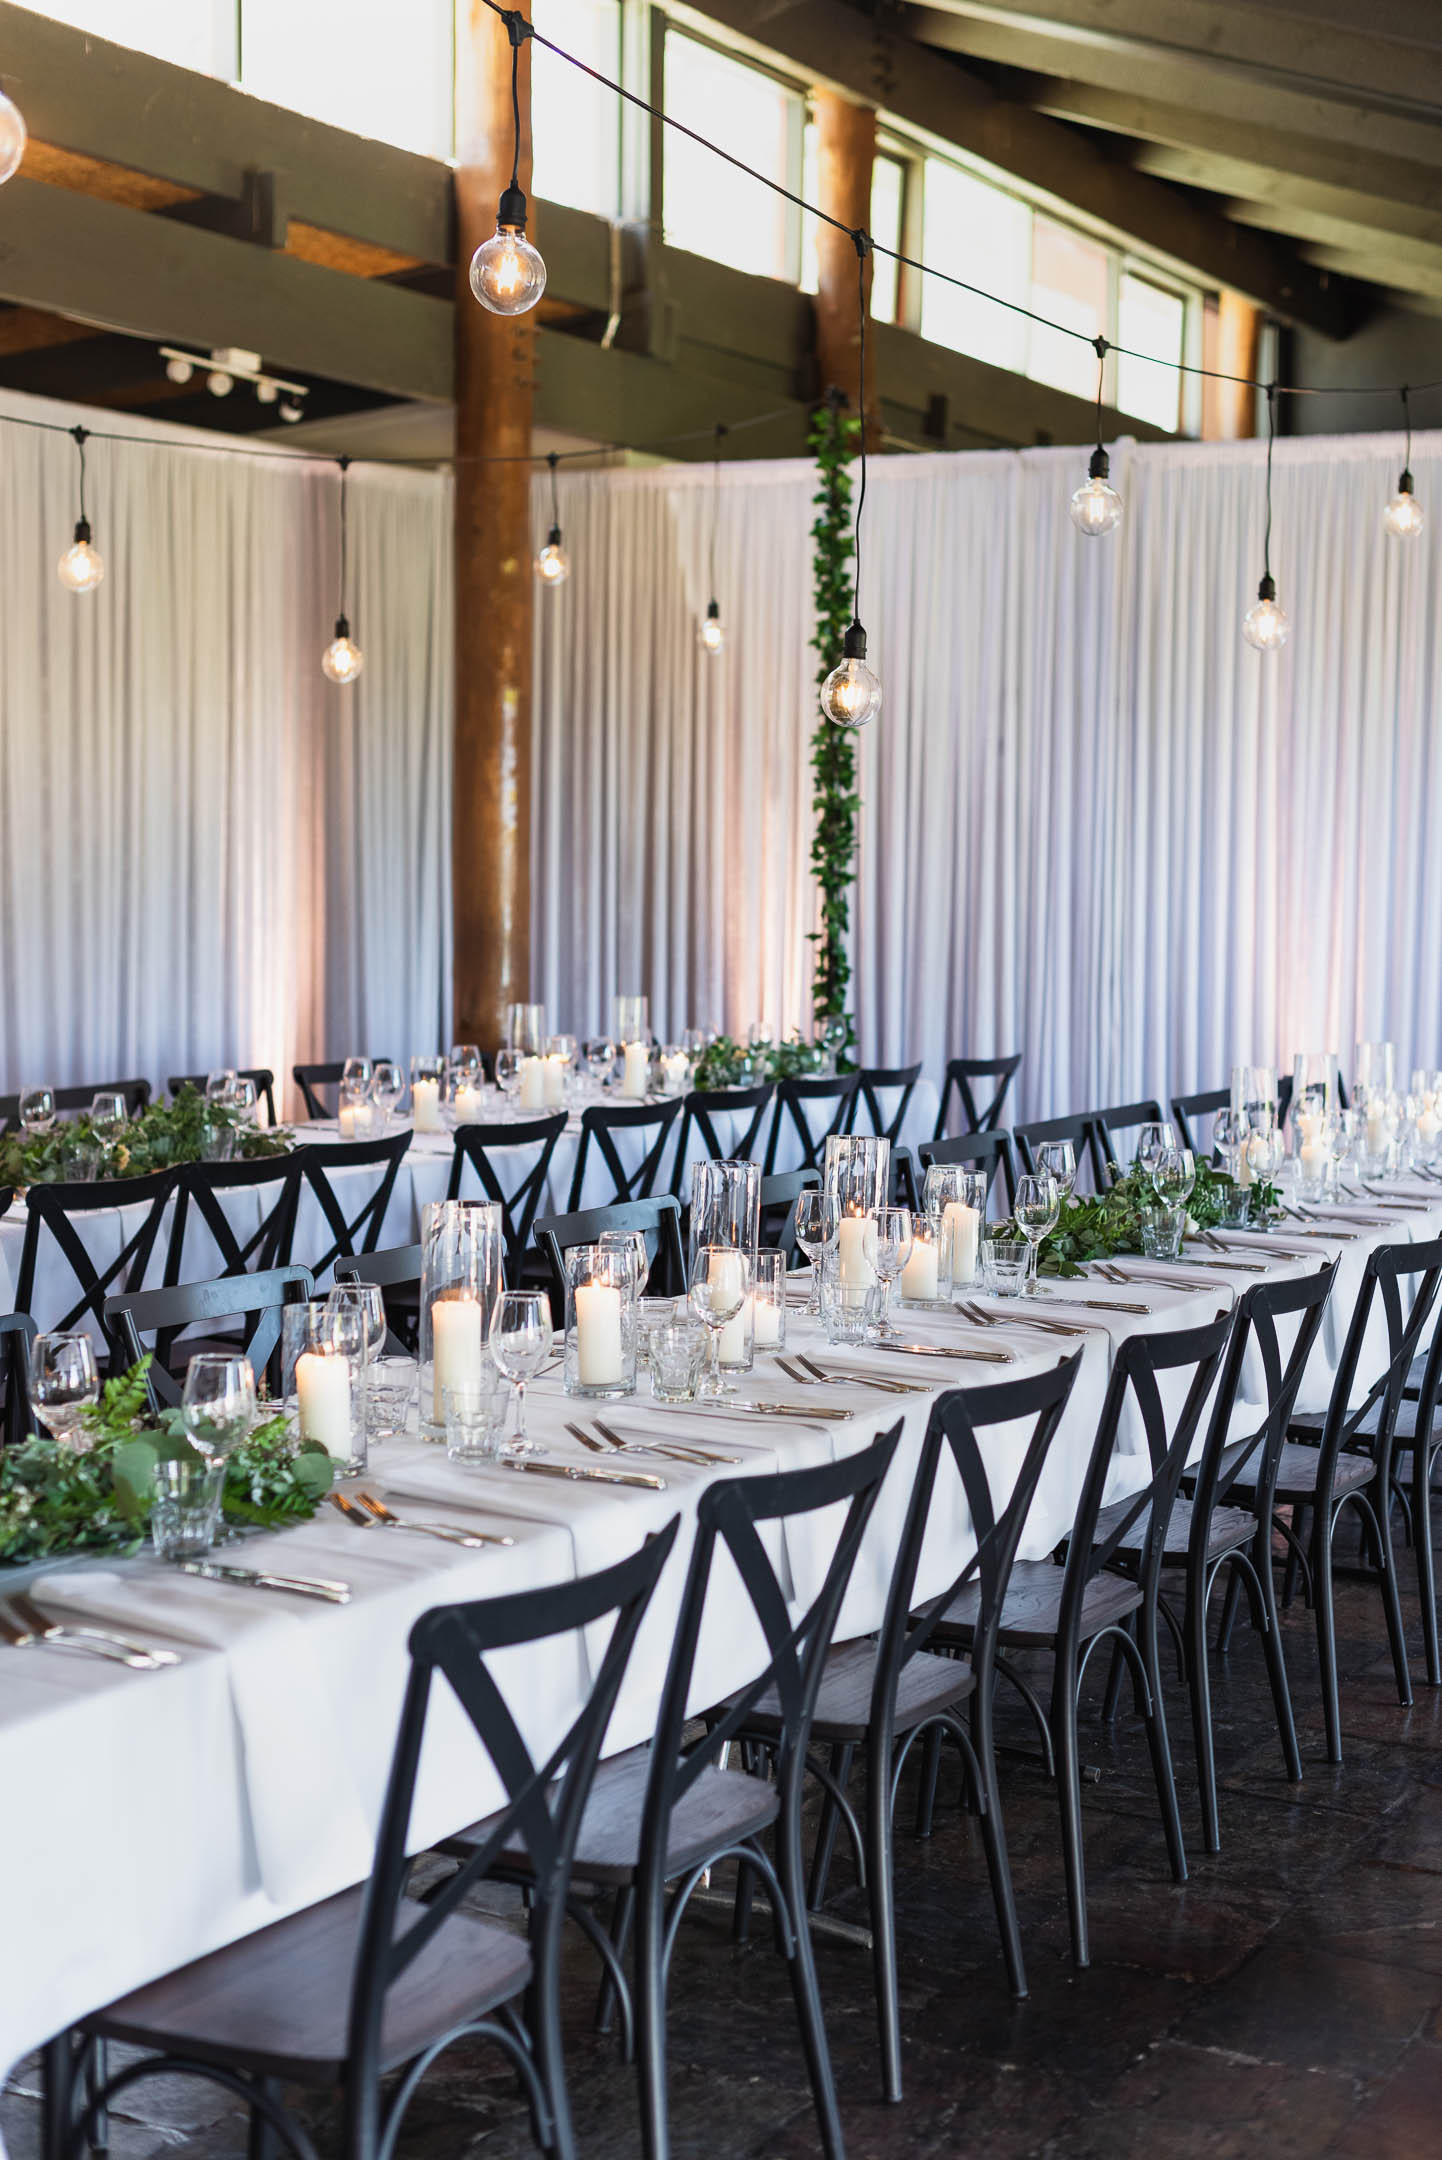 Fergusson winery wedding with long tables